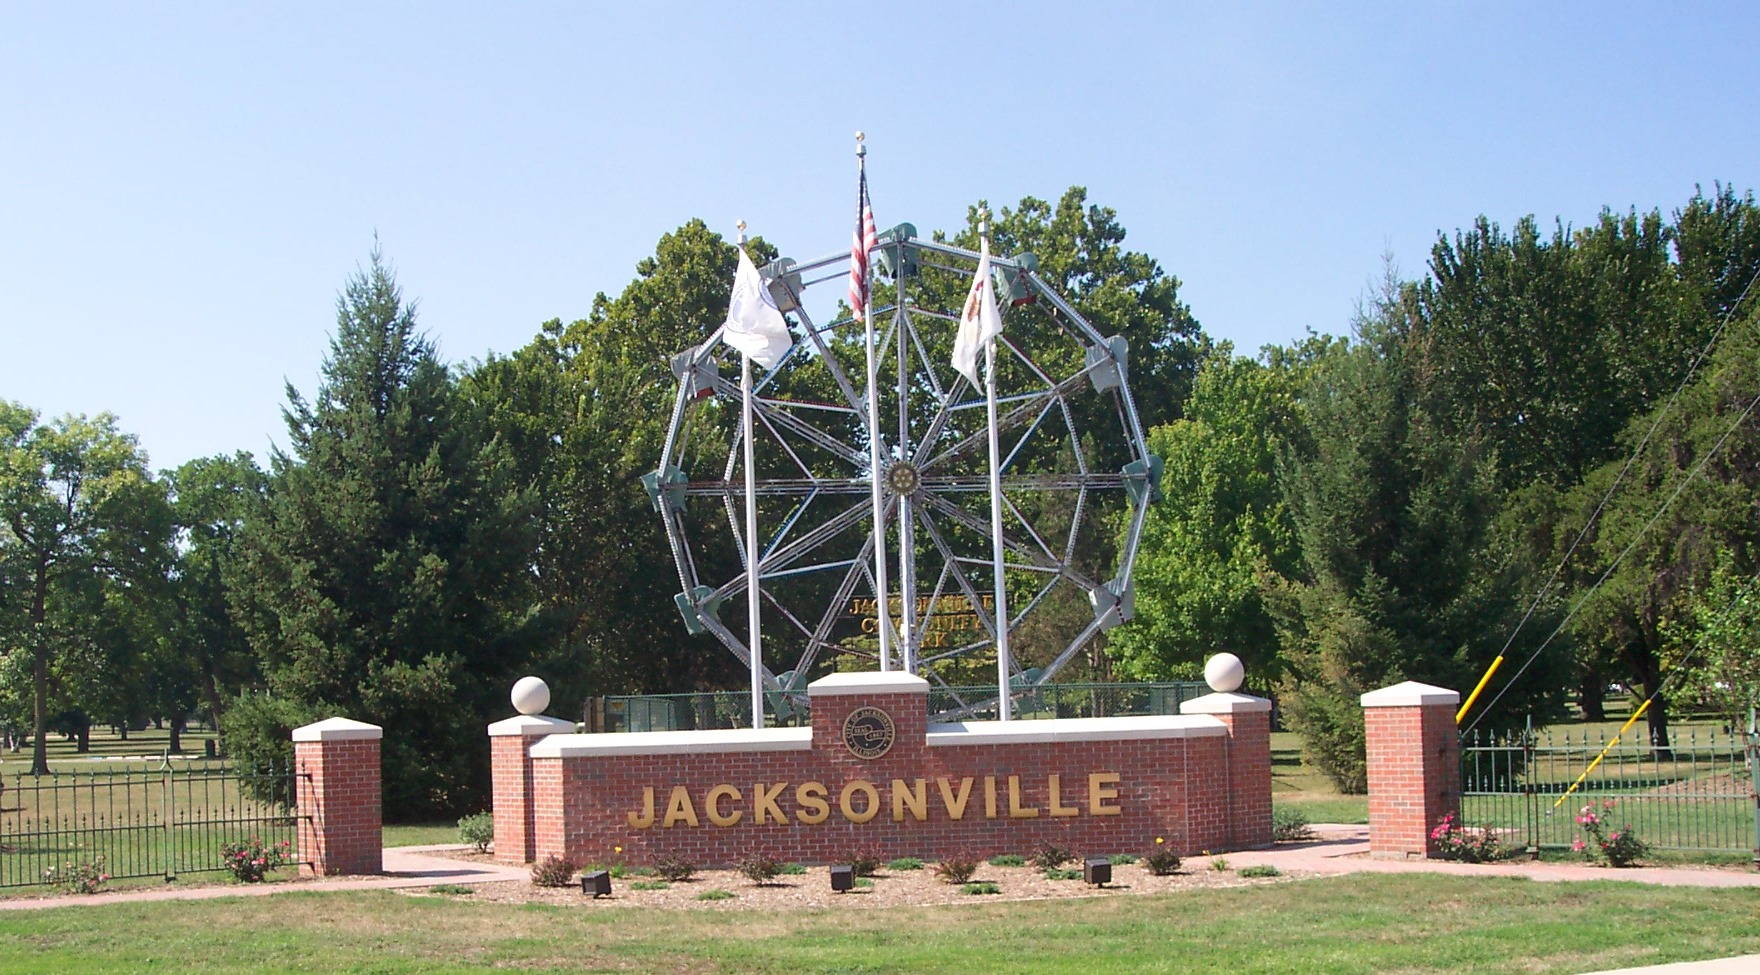 Jacksonville, IL outdoor landmark